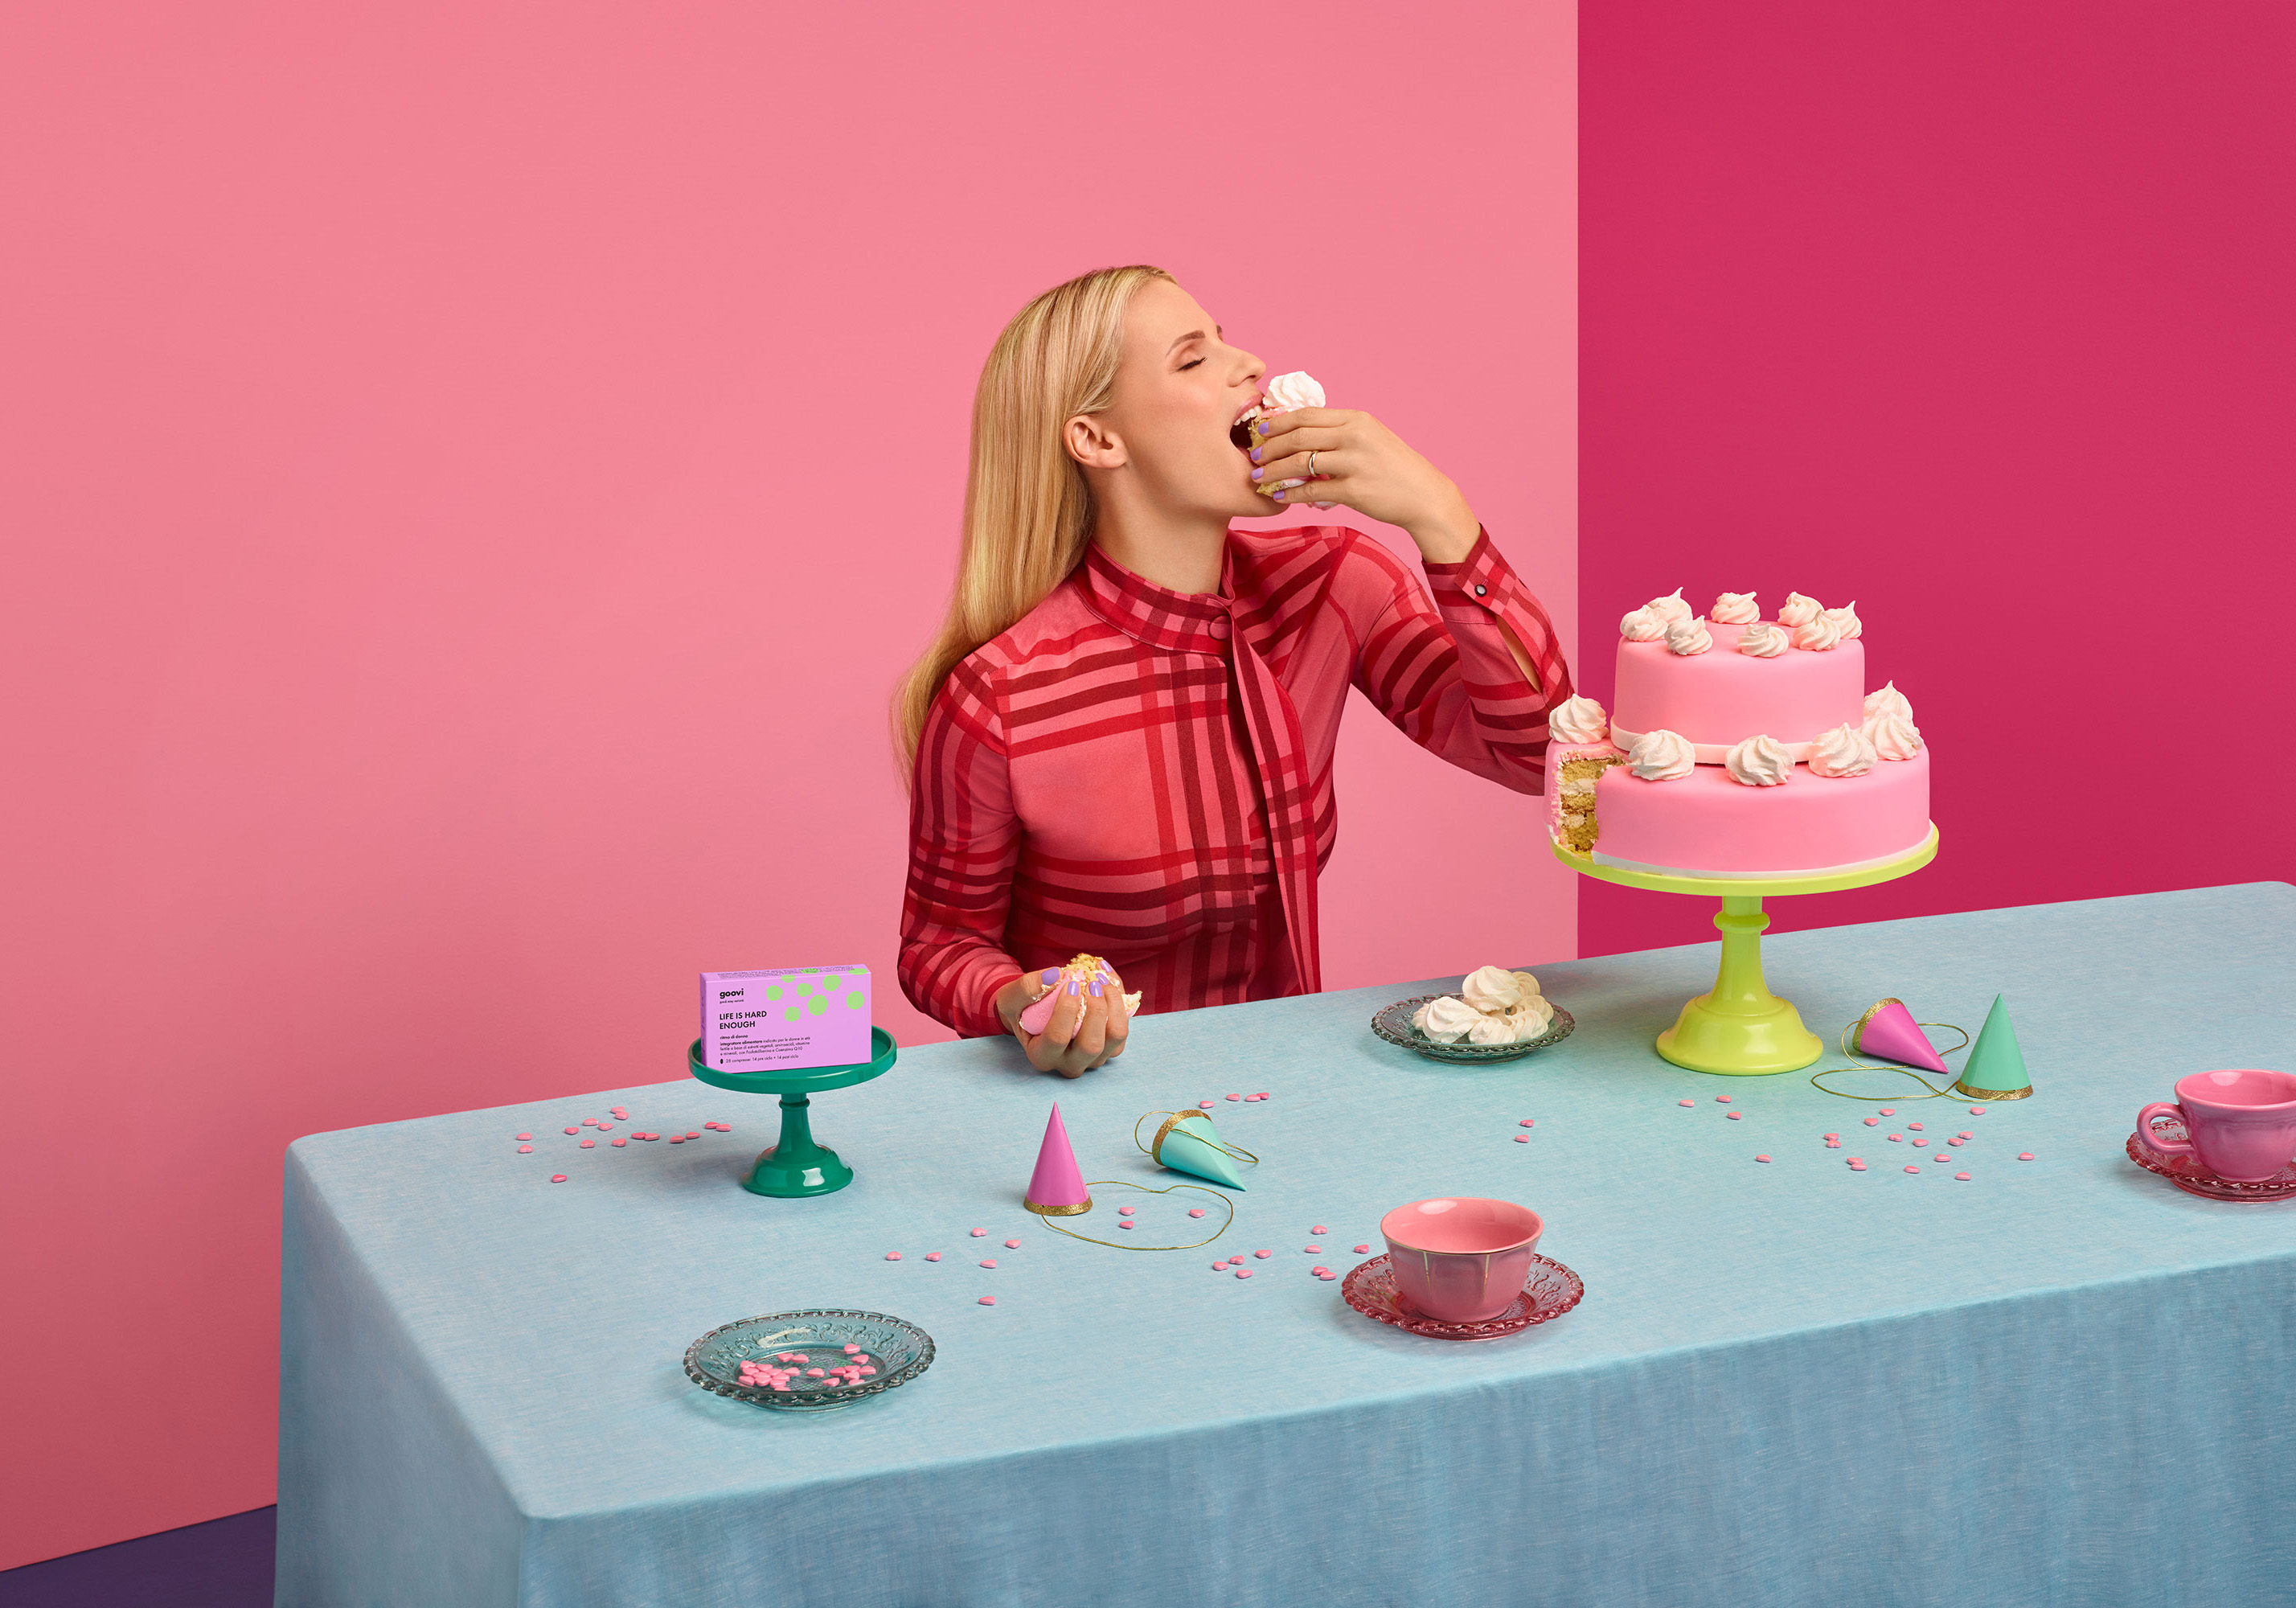 Goovi ADV 2018 | Aleksandra Kingo | Goovi | Stephanie Kherlakian | Numerique Retouch Photo Retouching Studio